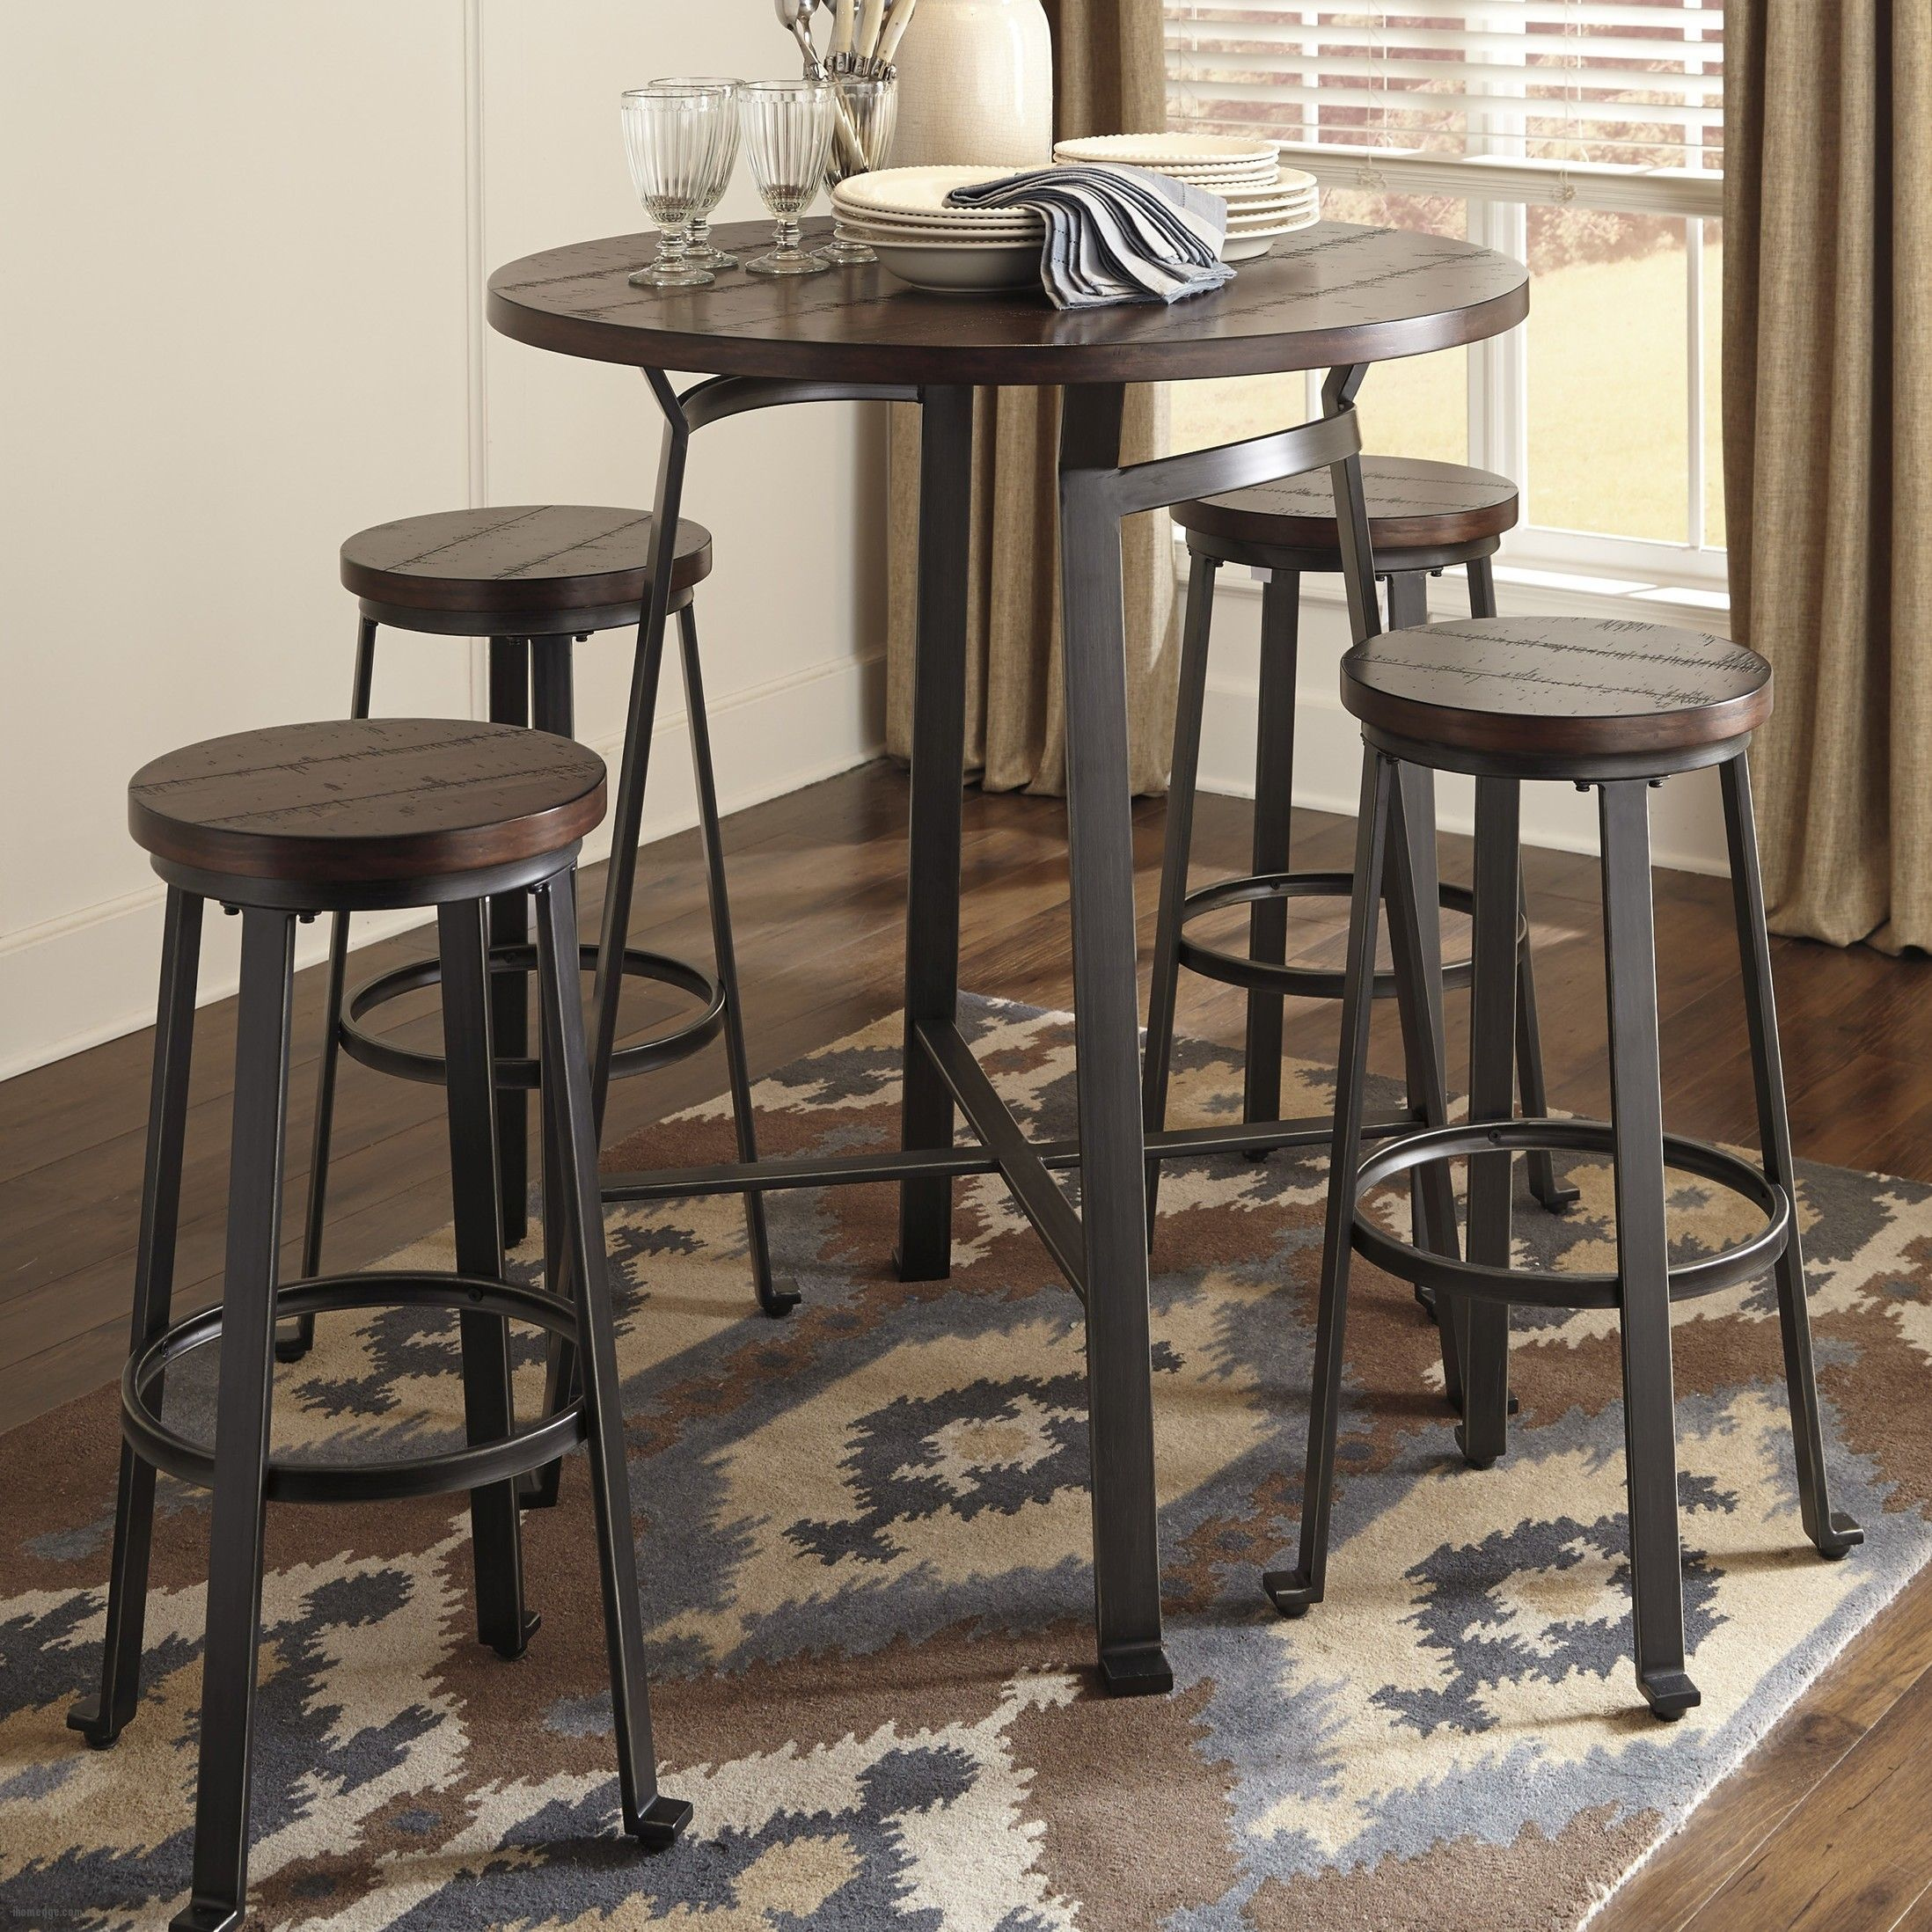 kitchen style room sets dining pub diy and chairs baffbadbb table bar